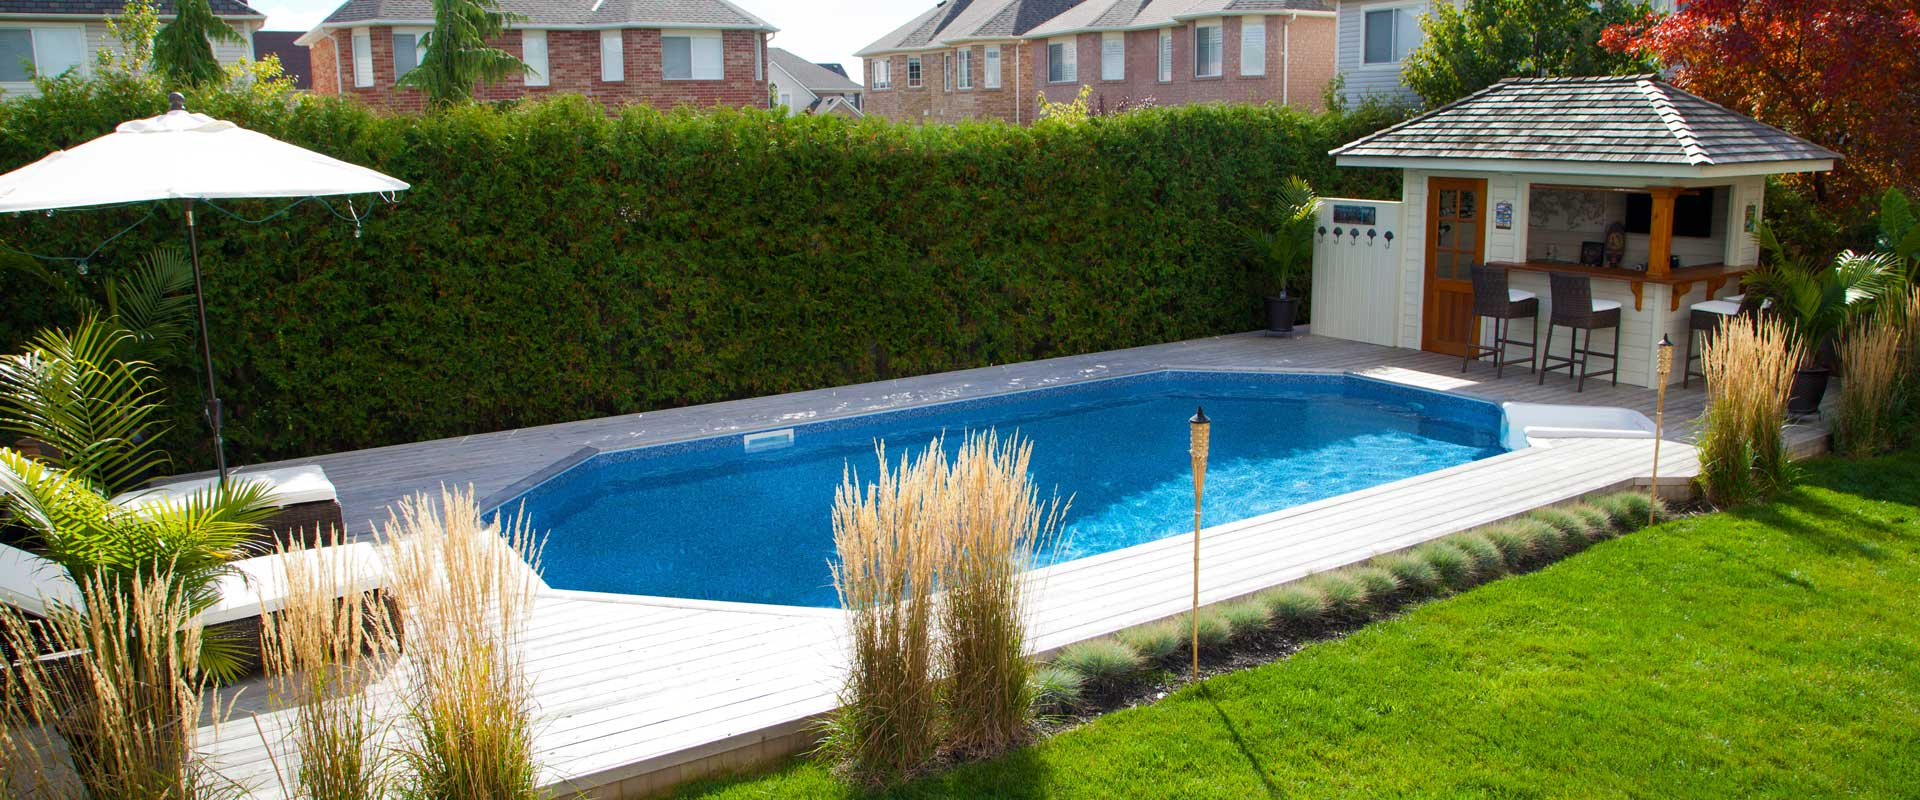 Onground Pools  Pioneer Family Pools